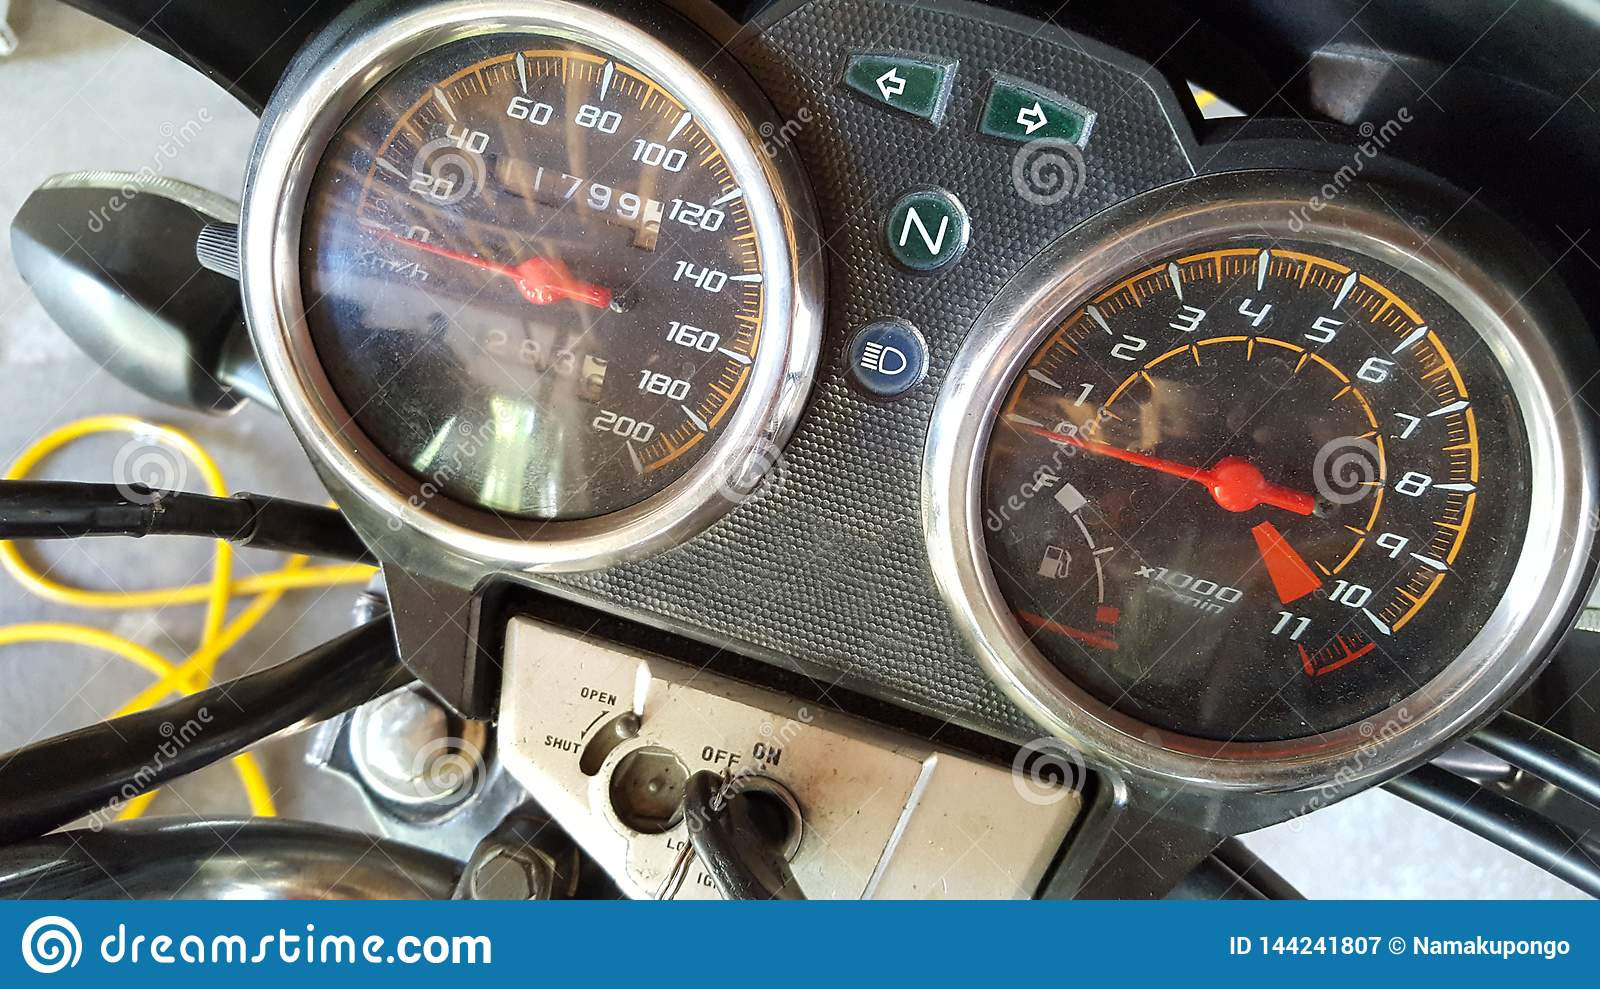 Motor Speed Meter, Speed Calculator And Distance Traveled On The